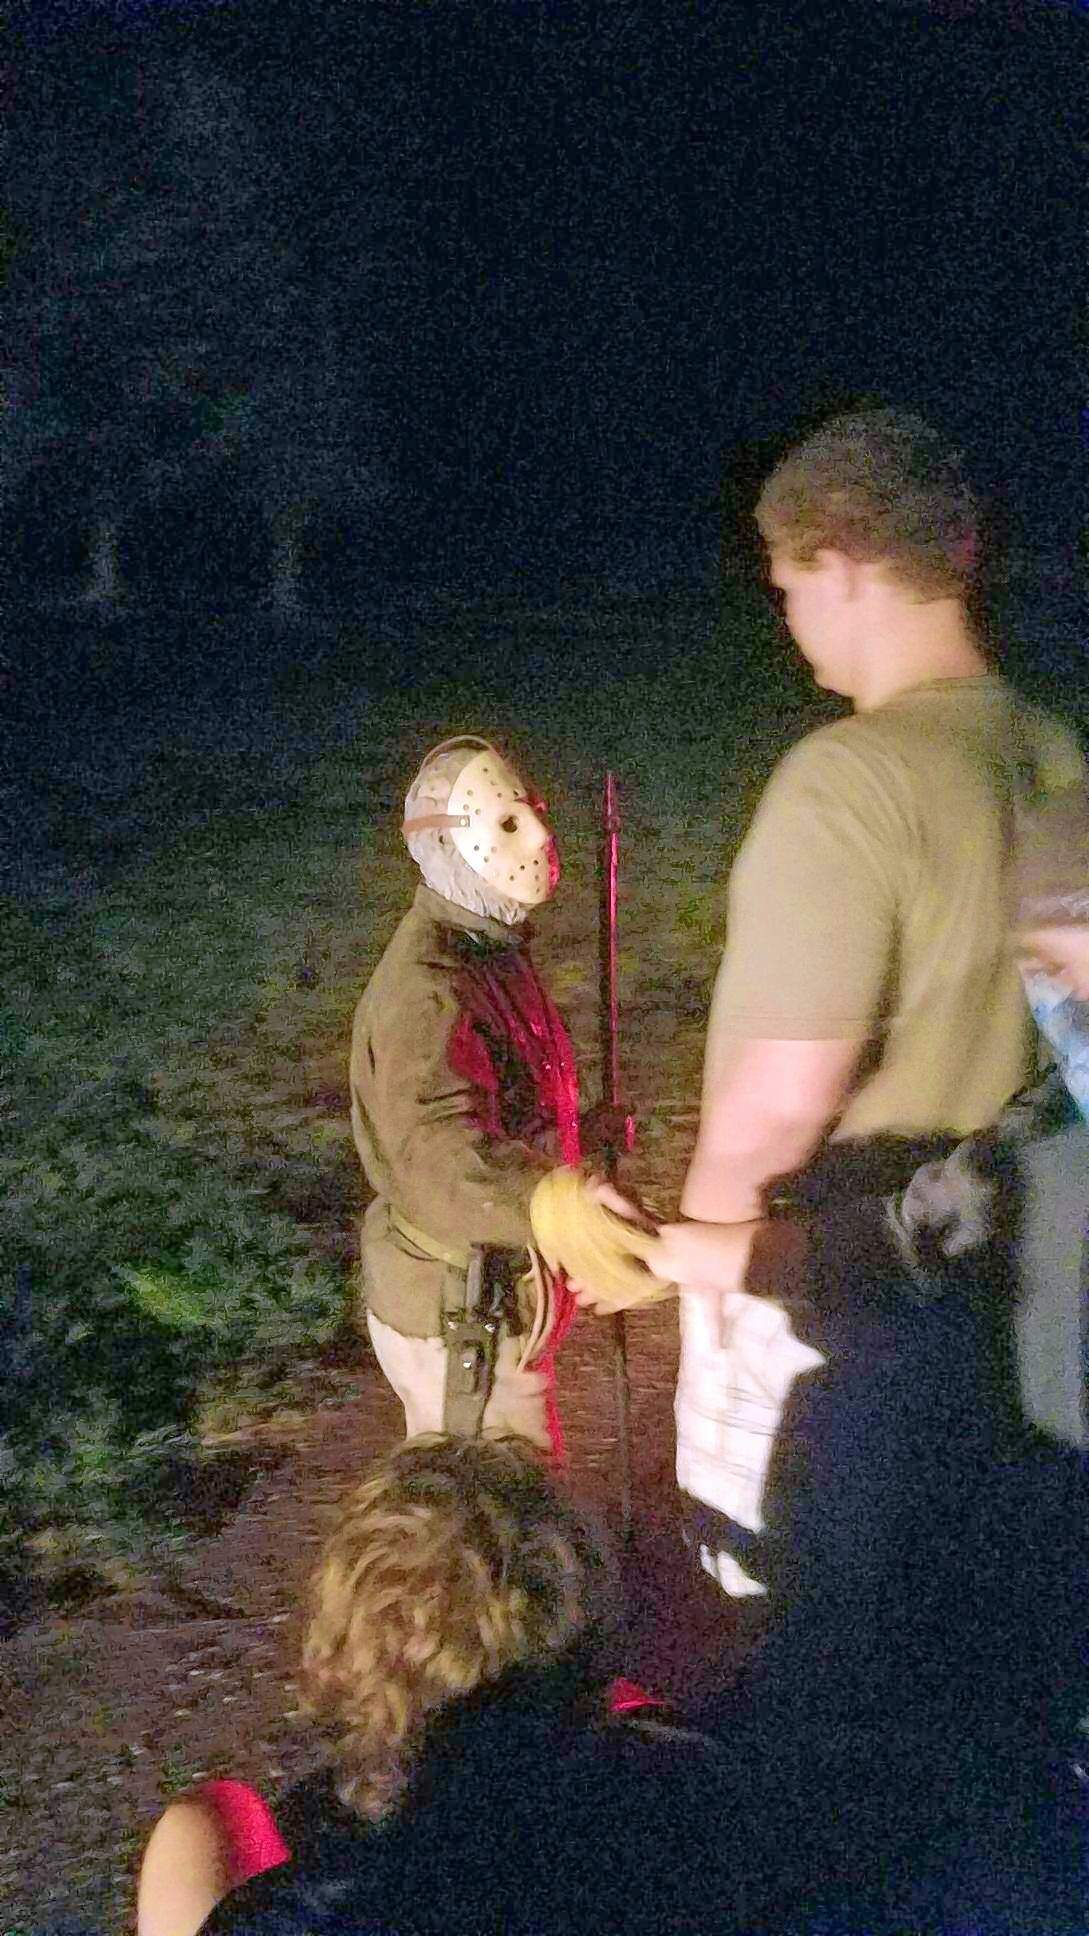 """""""Jason"""" shakes Patrick Krahel's hand while getting stared down by Blake Eversmann, at the Coleman Tri-County Services haunted forest over the past weekend. The actor C.J. Graham, who portrayed Jason Voorhees in the sixth installment of the """"Friday the 13th"""" movie series reprised his famous role for what is the 25th year of the haunted forest."""